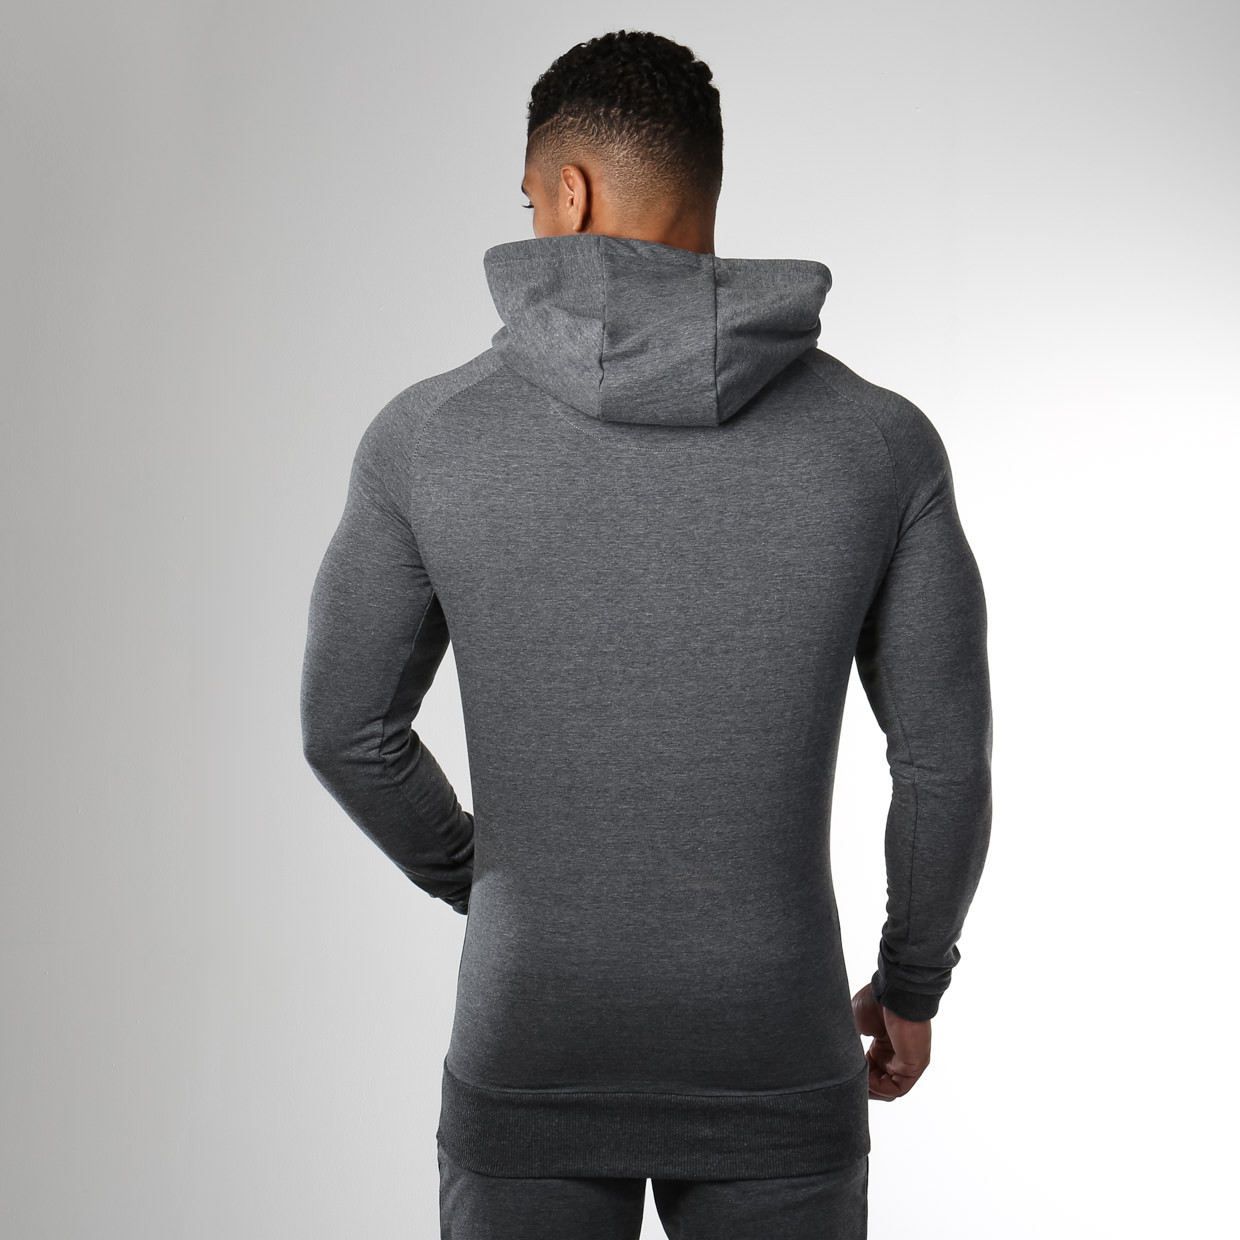 Gymshark Ark Pullover in Charcoal from the Back